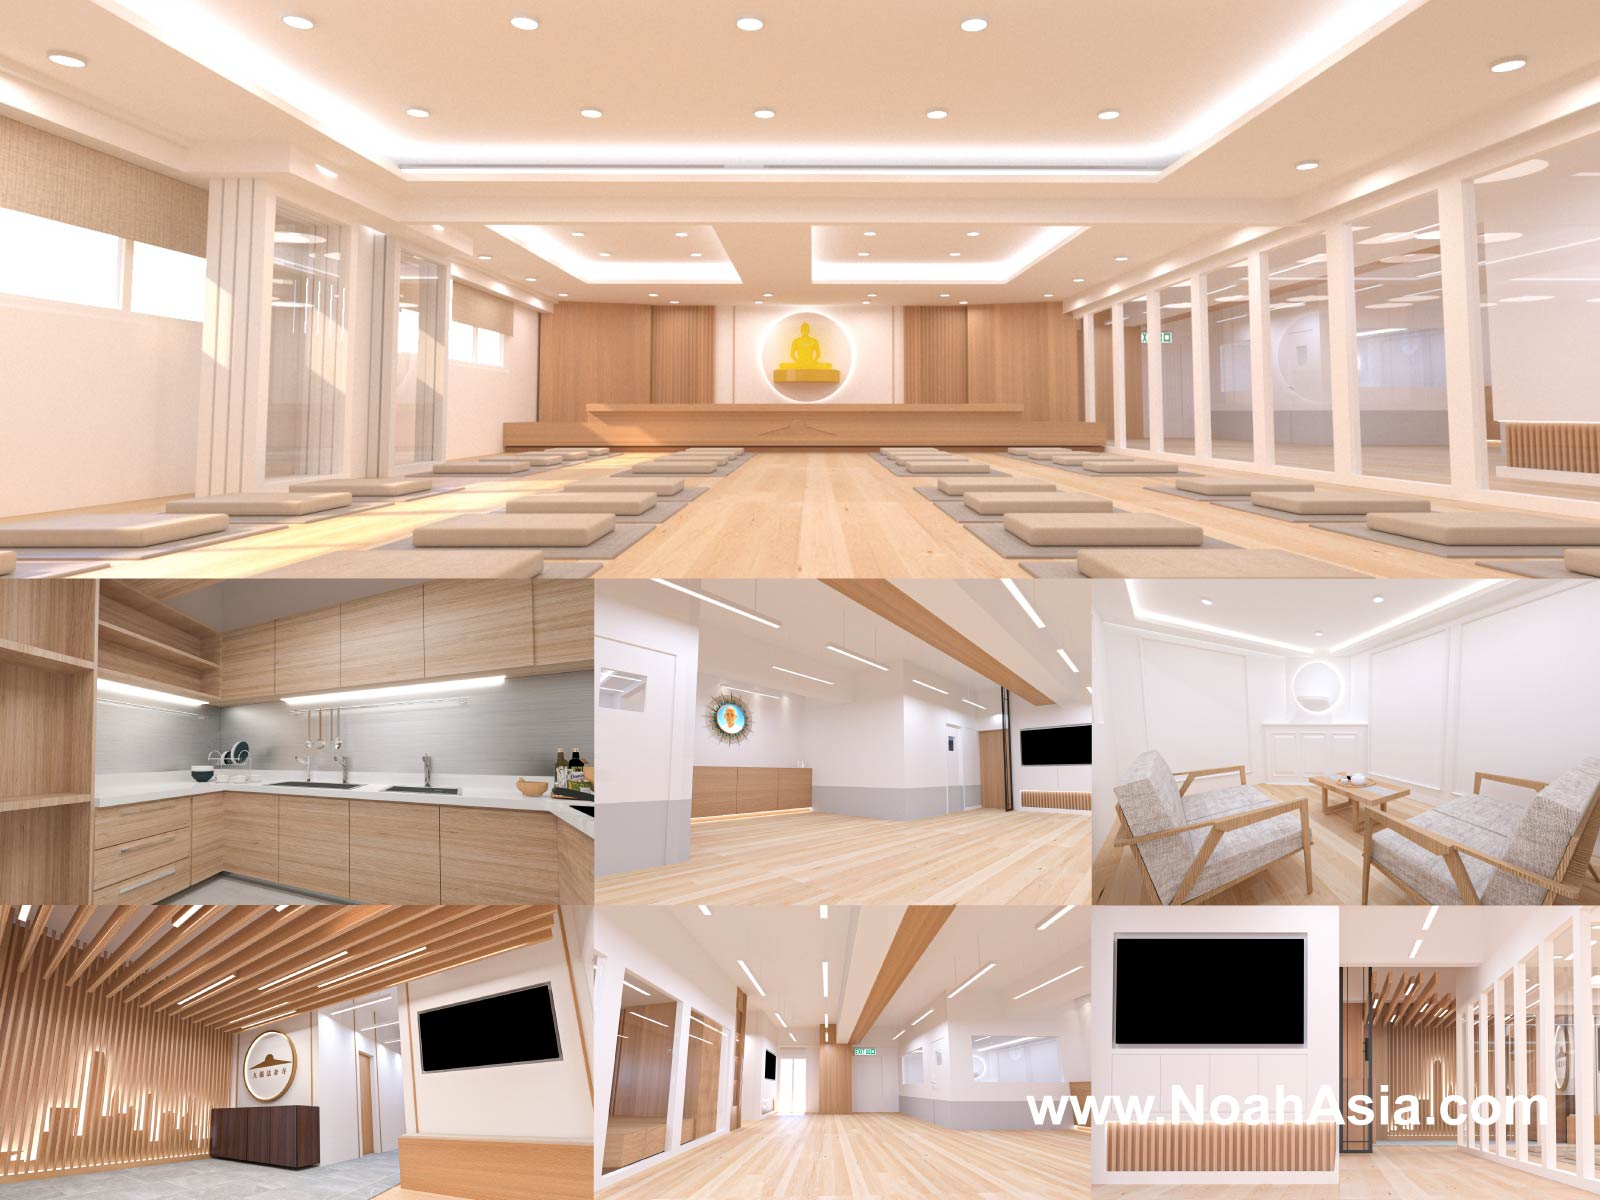 BHAVANA KOWLOON LIMITED - Centre Renovation